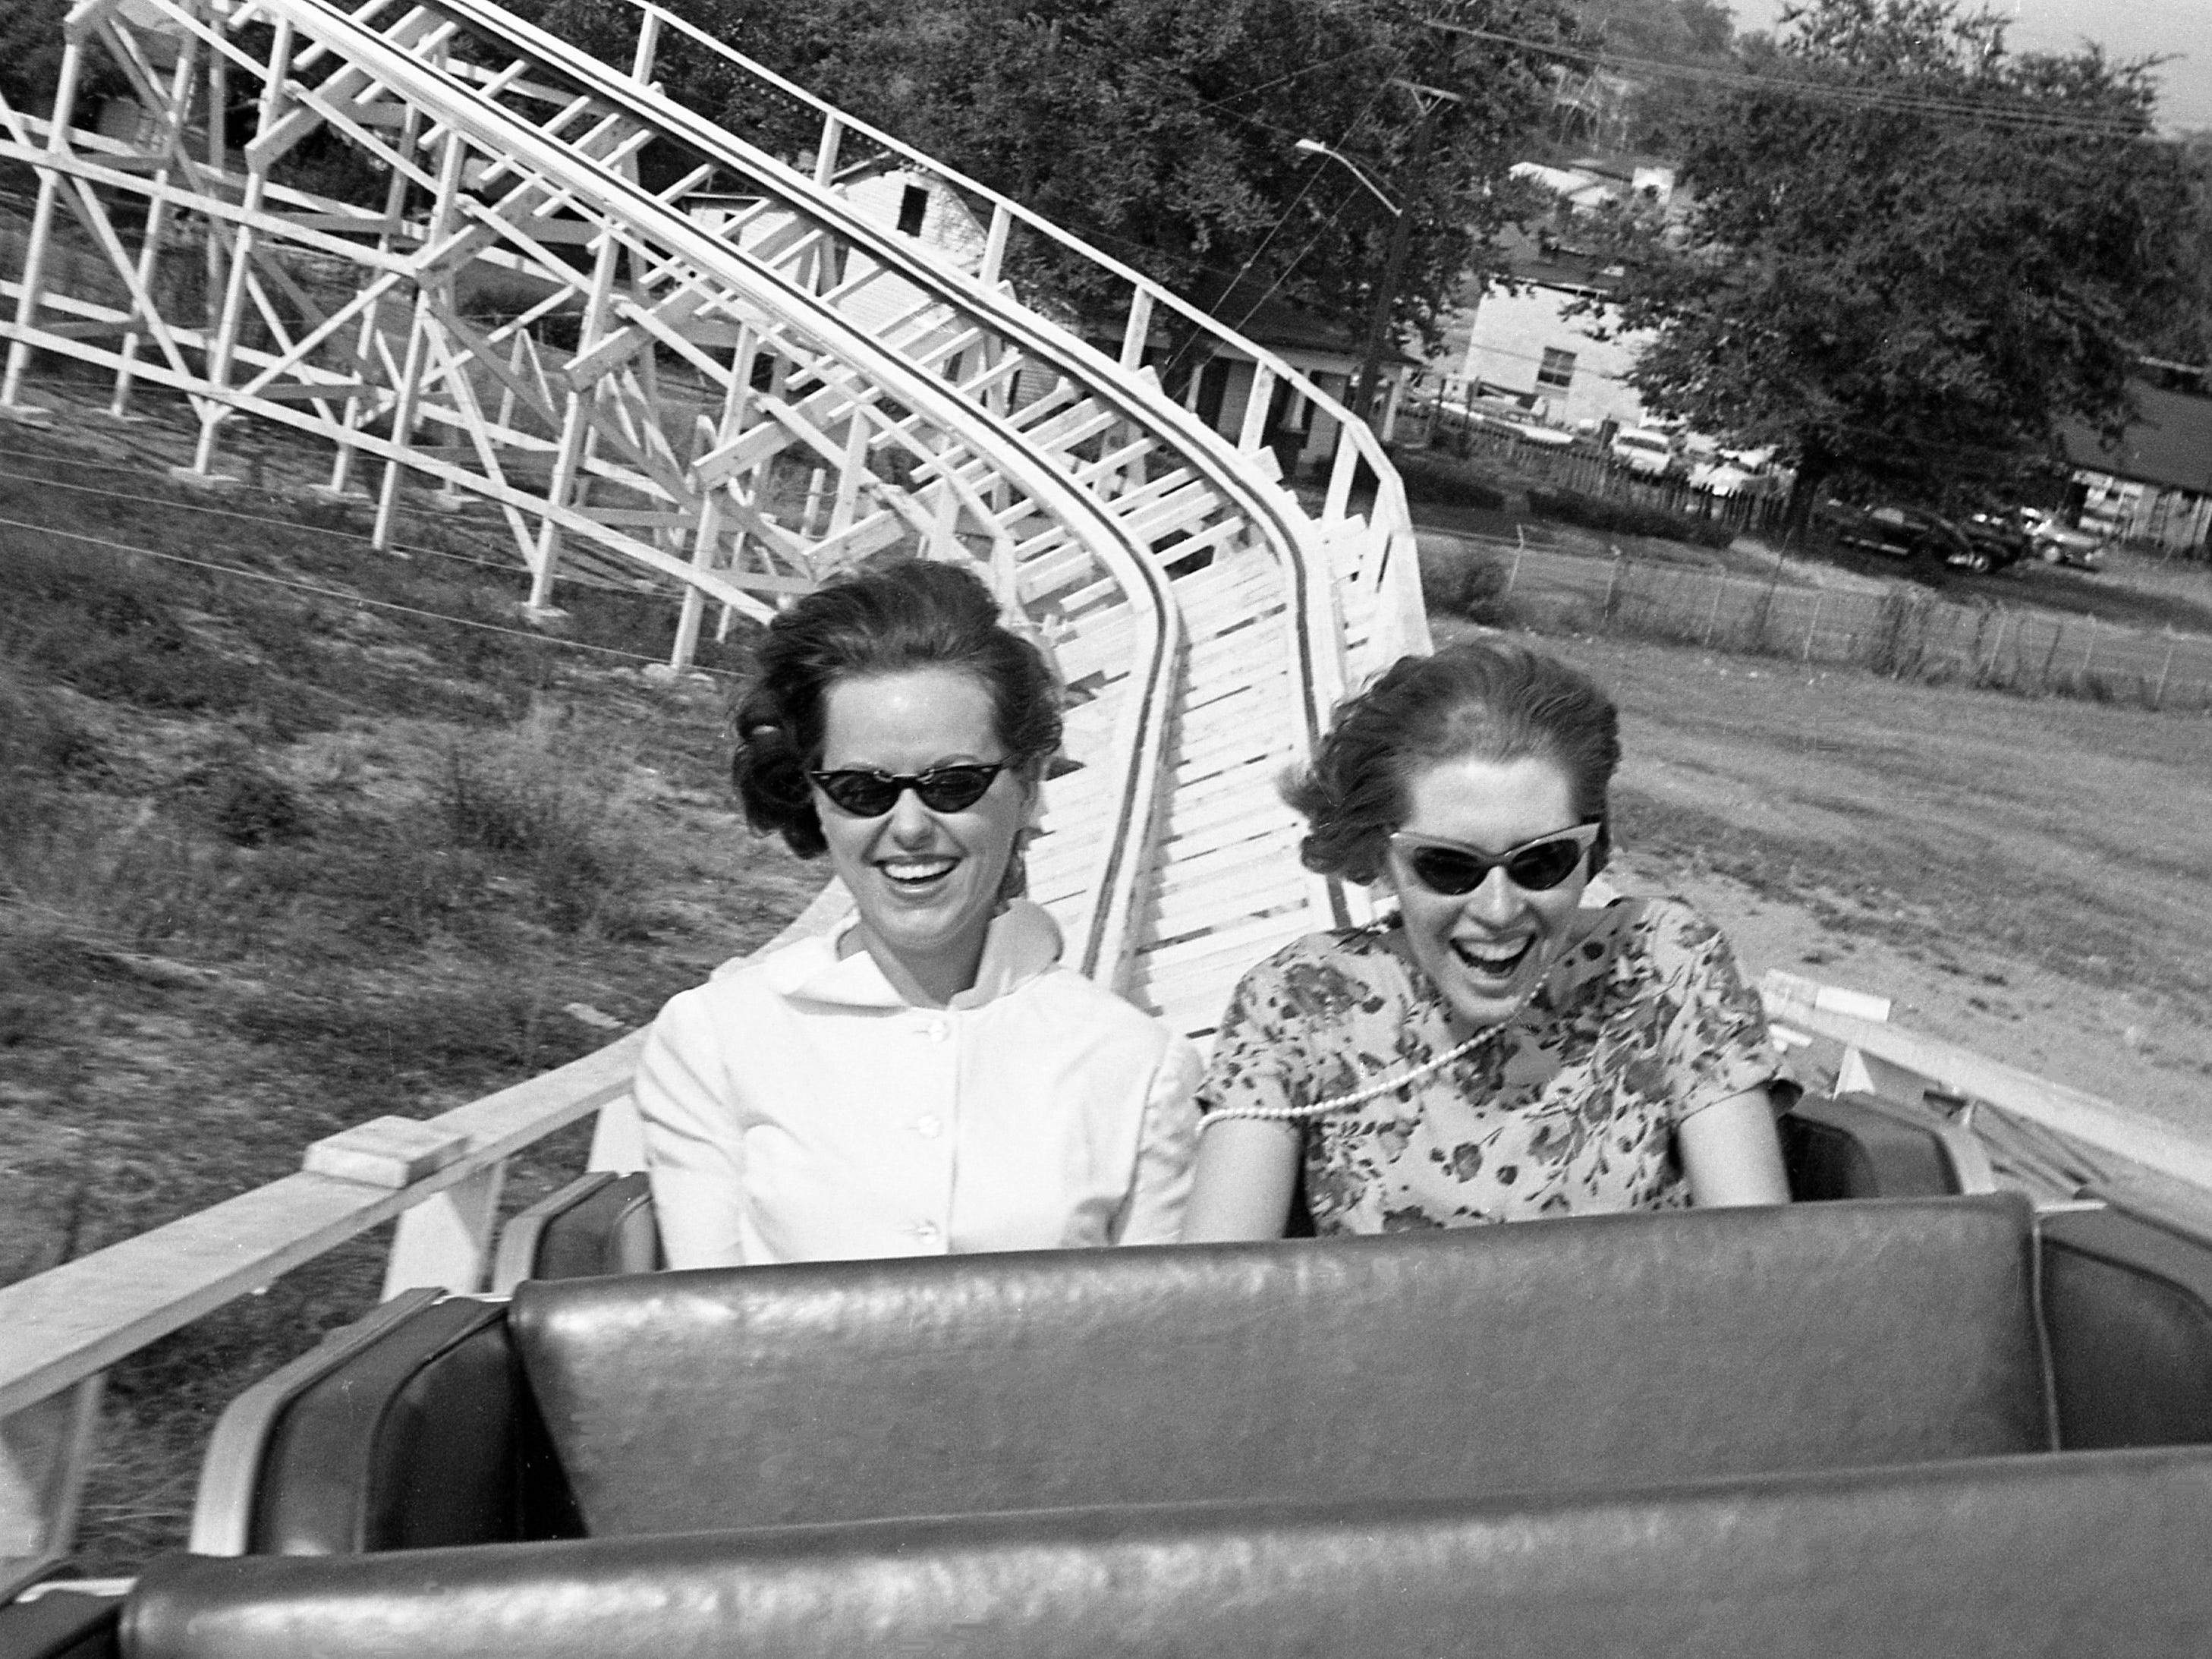 The deceptive second hill of the Skyliner, the new roller coaster at the Tennessee State Fairgrounds, takes your breath away, but somehow Alice Sloan, left, and Nancy Bradford find air enough to laugh and scream Aug. 5, 1965. Bradford, a Tennessean reporter, and Sloan, a Tennessean editorial secretary, are test riding the coaster for a story, as it been in operation for about three weeks.